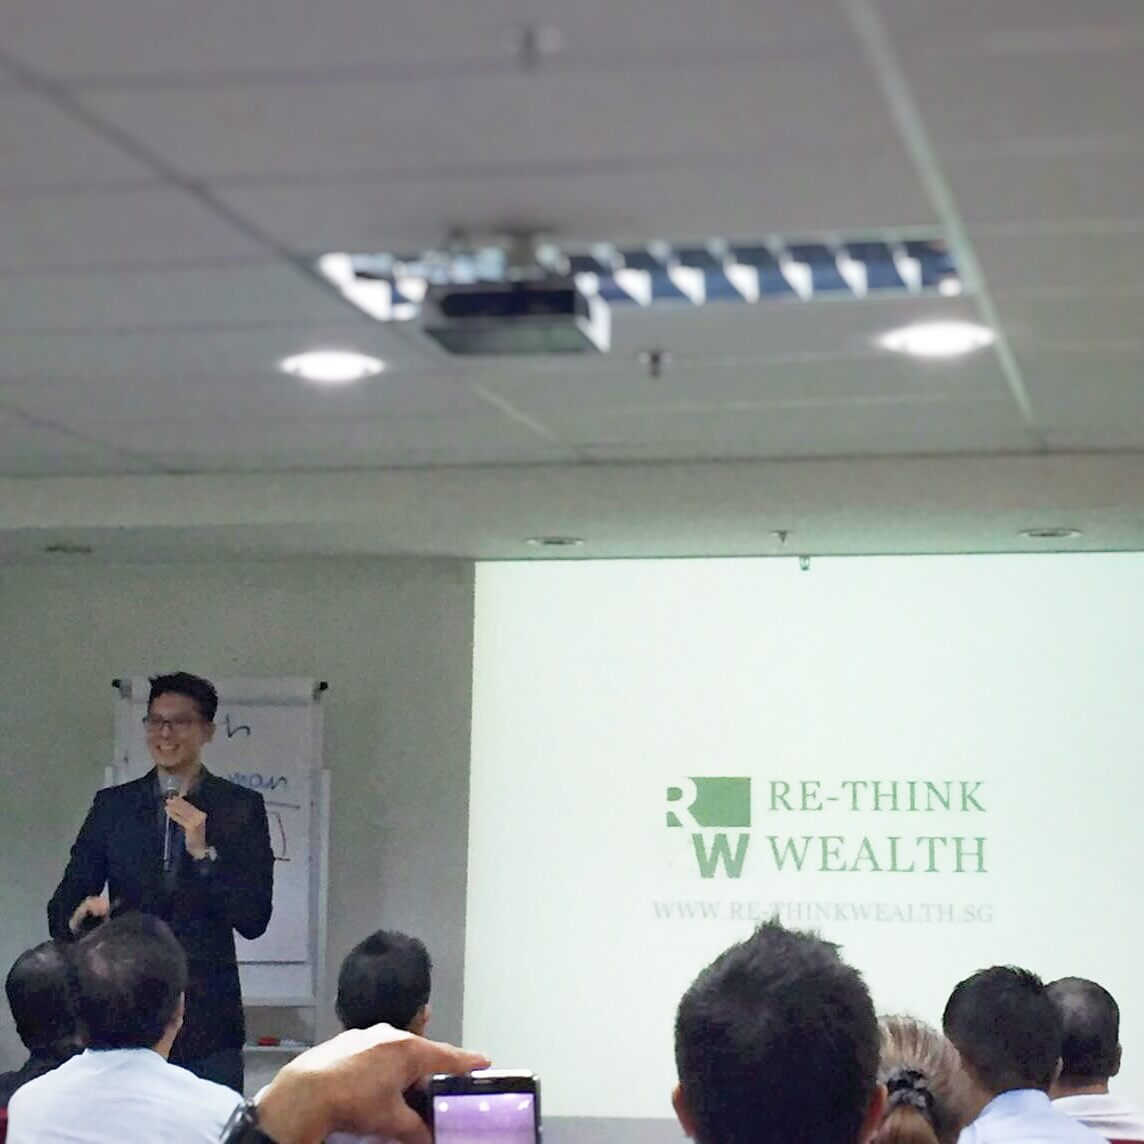 christopher lee susanto, www.re-thinkwealth,sg, www.re-thinkwealth.com, www.christopherleesusanto.com